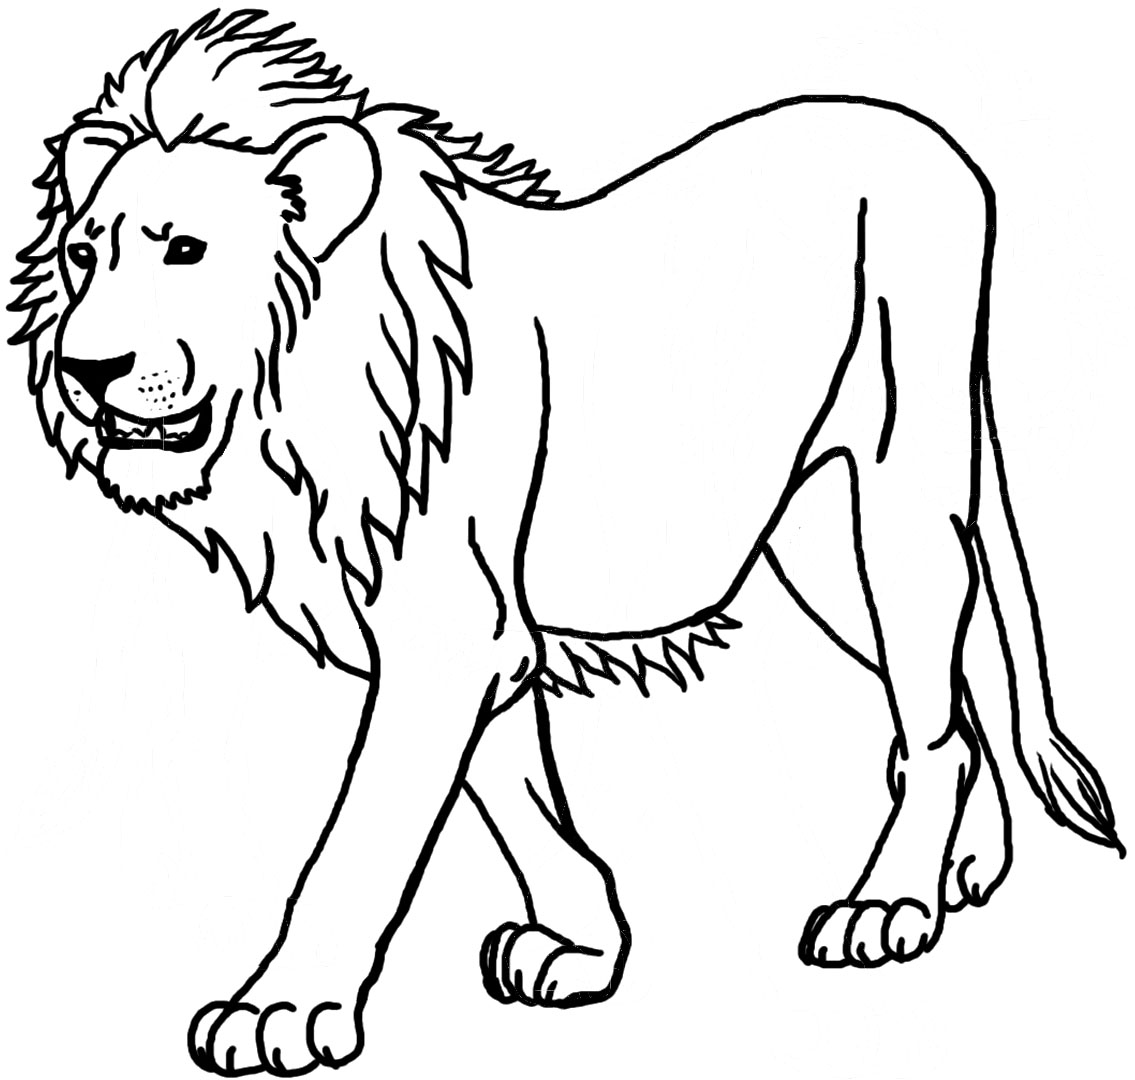 lion growling coloring pages - photo#29